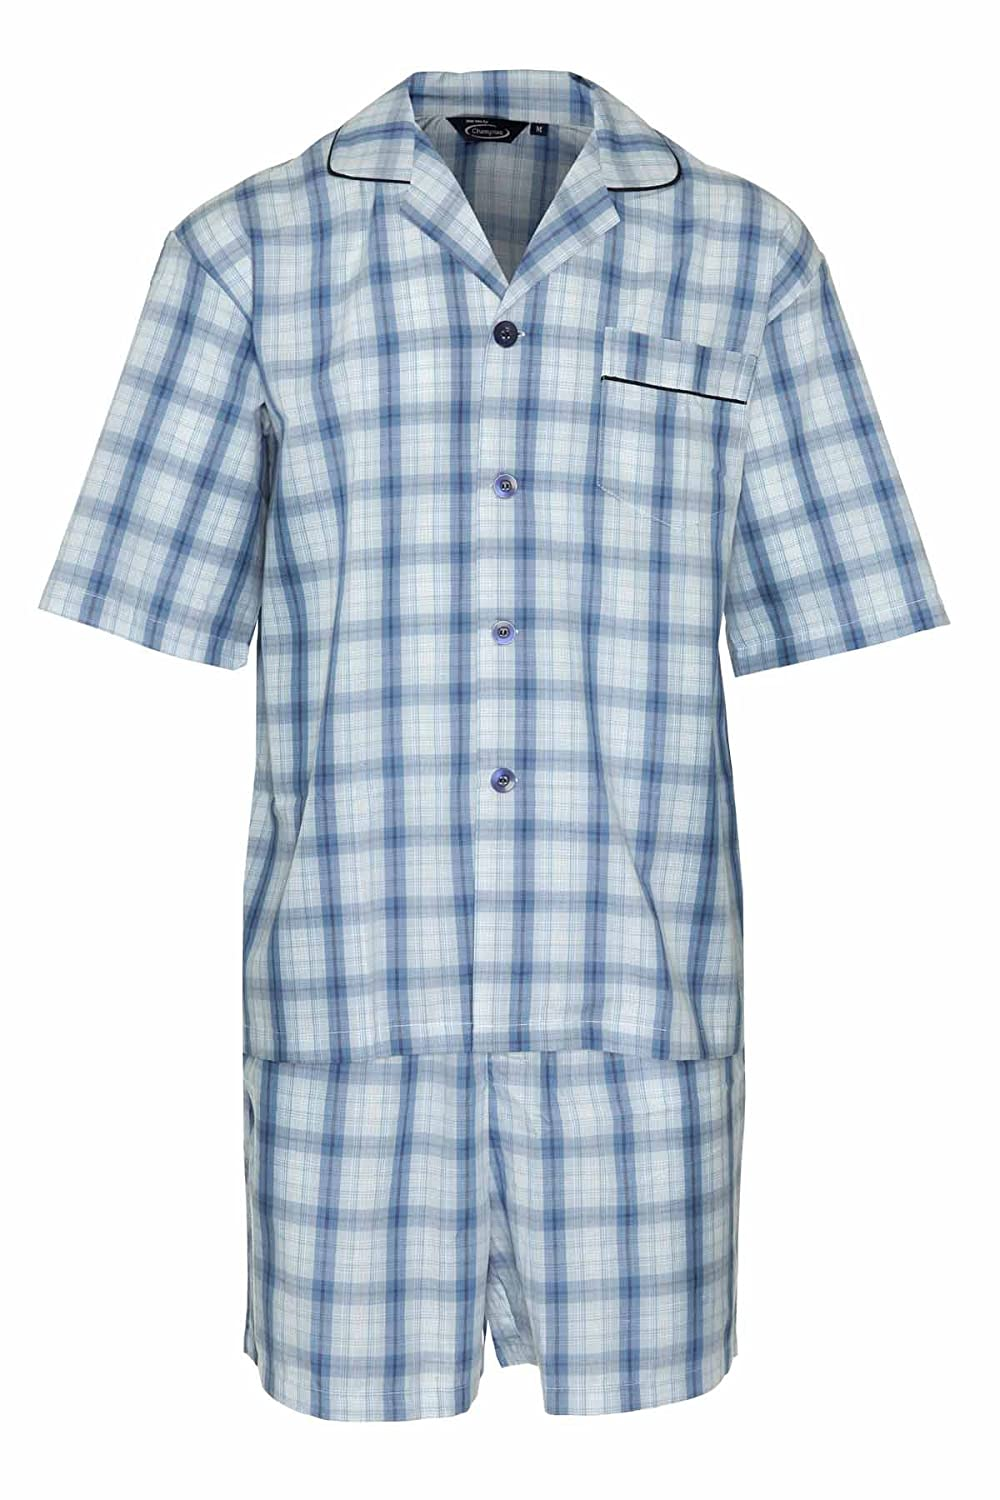 Champion Mens Summer Cotton Short Pyjamas Sleepwear Nightwear 3156